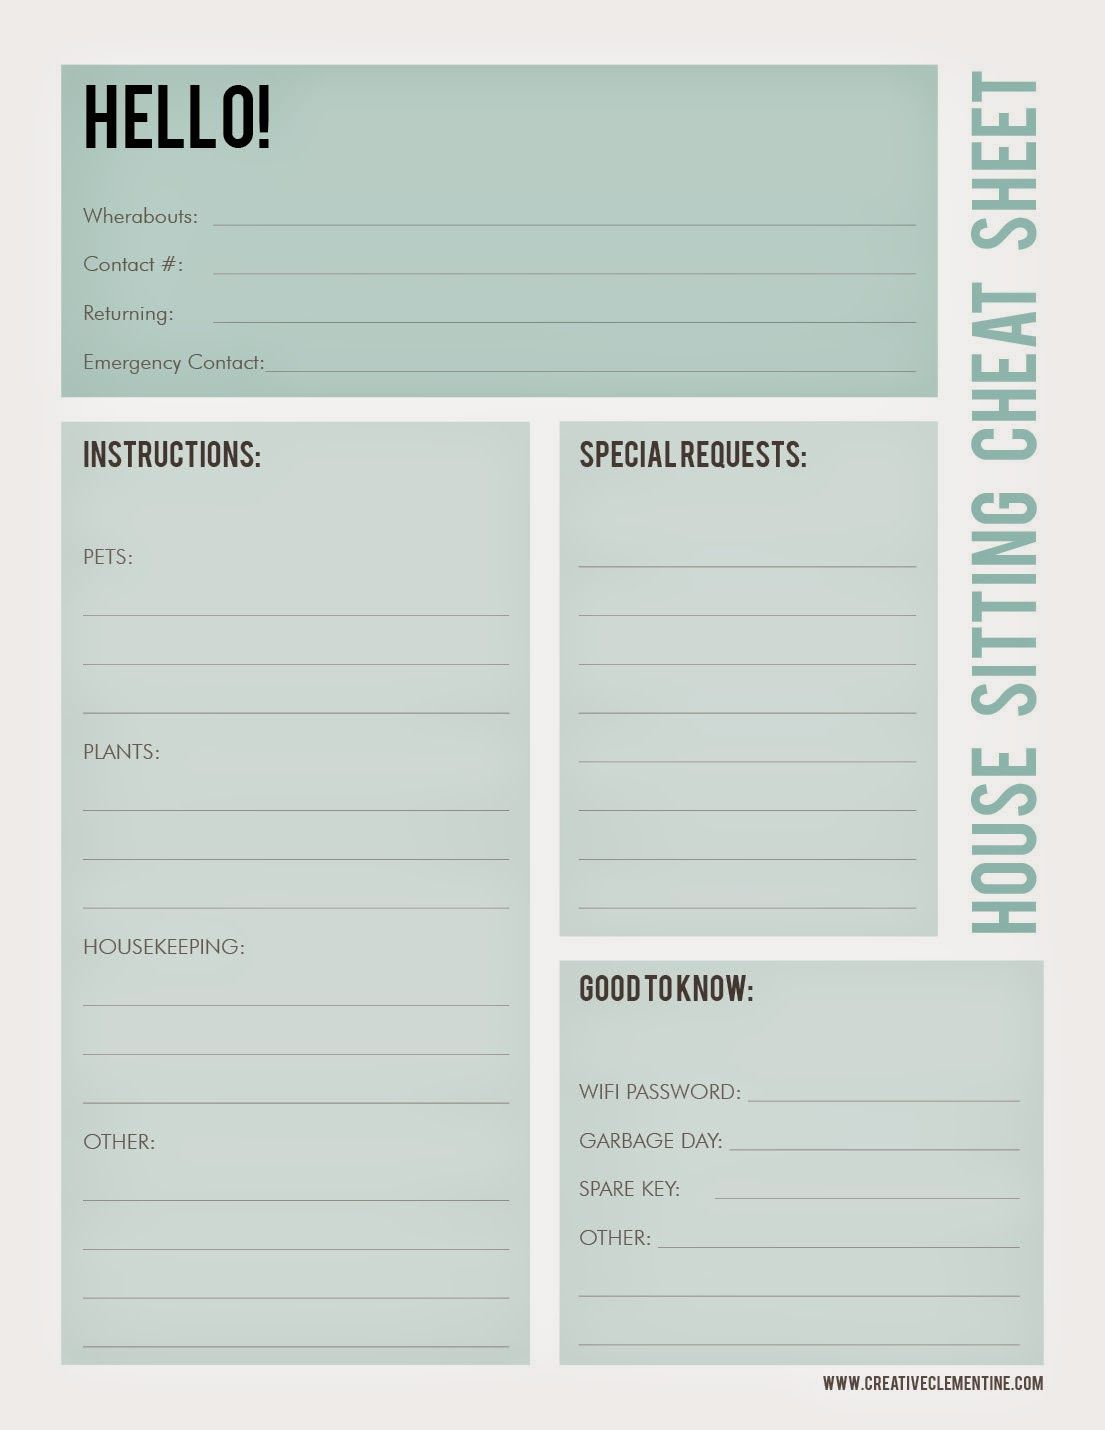 Creative Clementine Free Printable House Sitting Cheat Sheet Pet Sitting Forms House Sitting Pet Sitting Pet sitting client information form